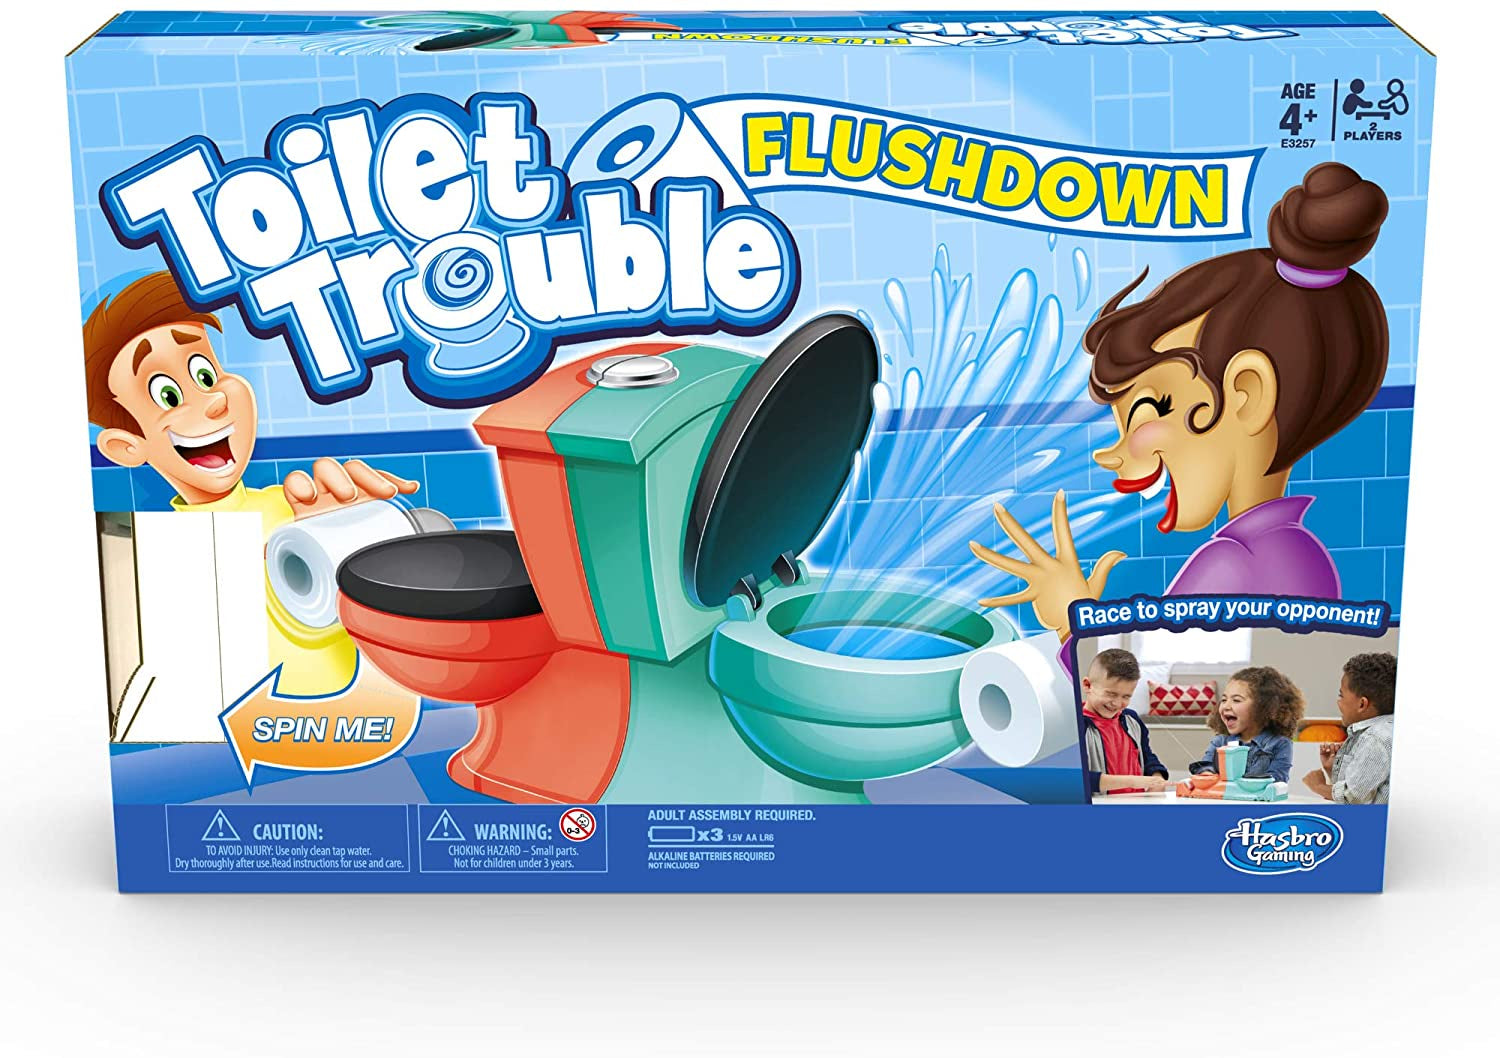 Toilet Trouble Flush Down Game